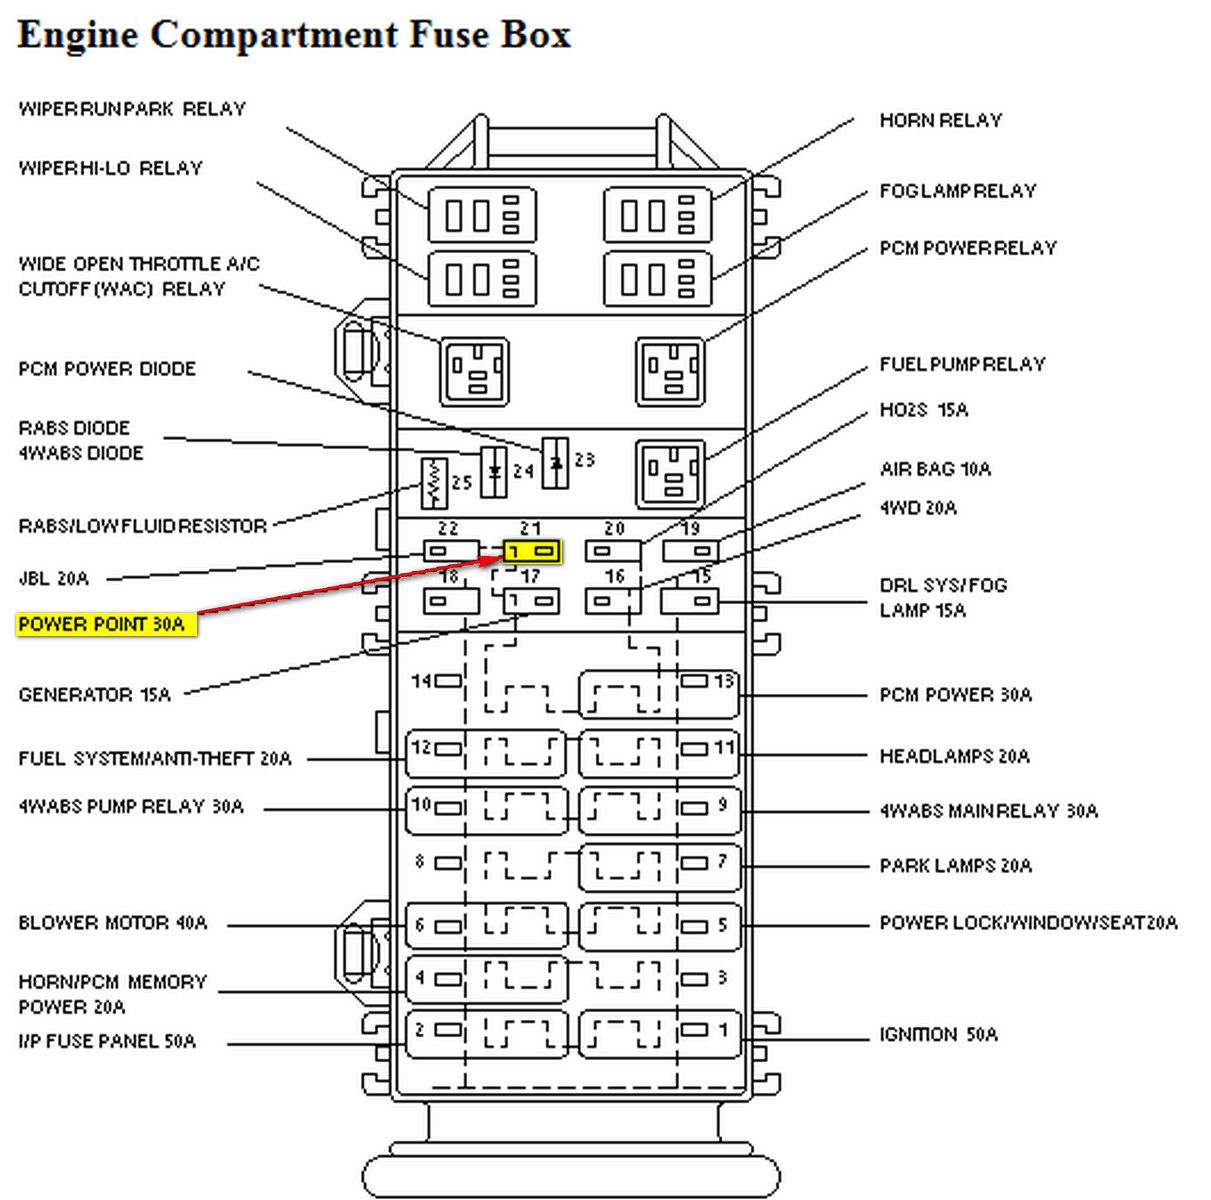 hight resolution of 2000 ford ranger fuse diagram wiring diagram centre 2000 ford ranger 3 0 fuse box diagram 2000